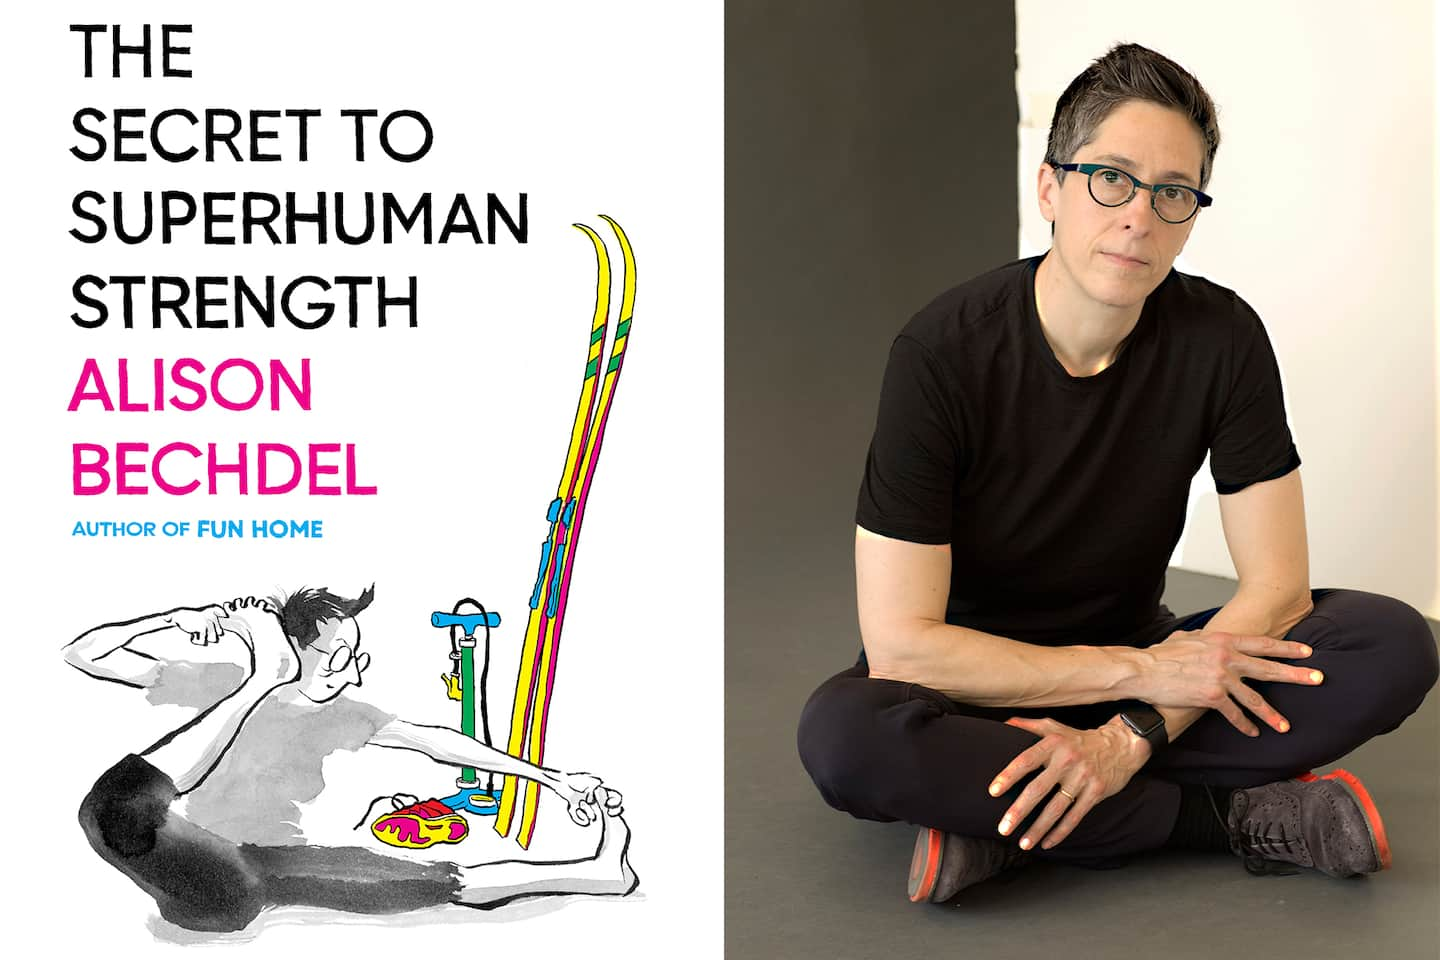 Alison Bechdel thought she was writing a book about exercise. It became a metaphysical adventure.